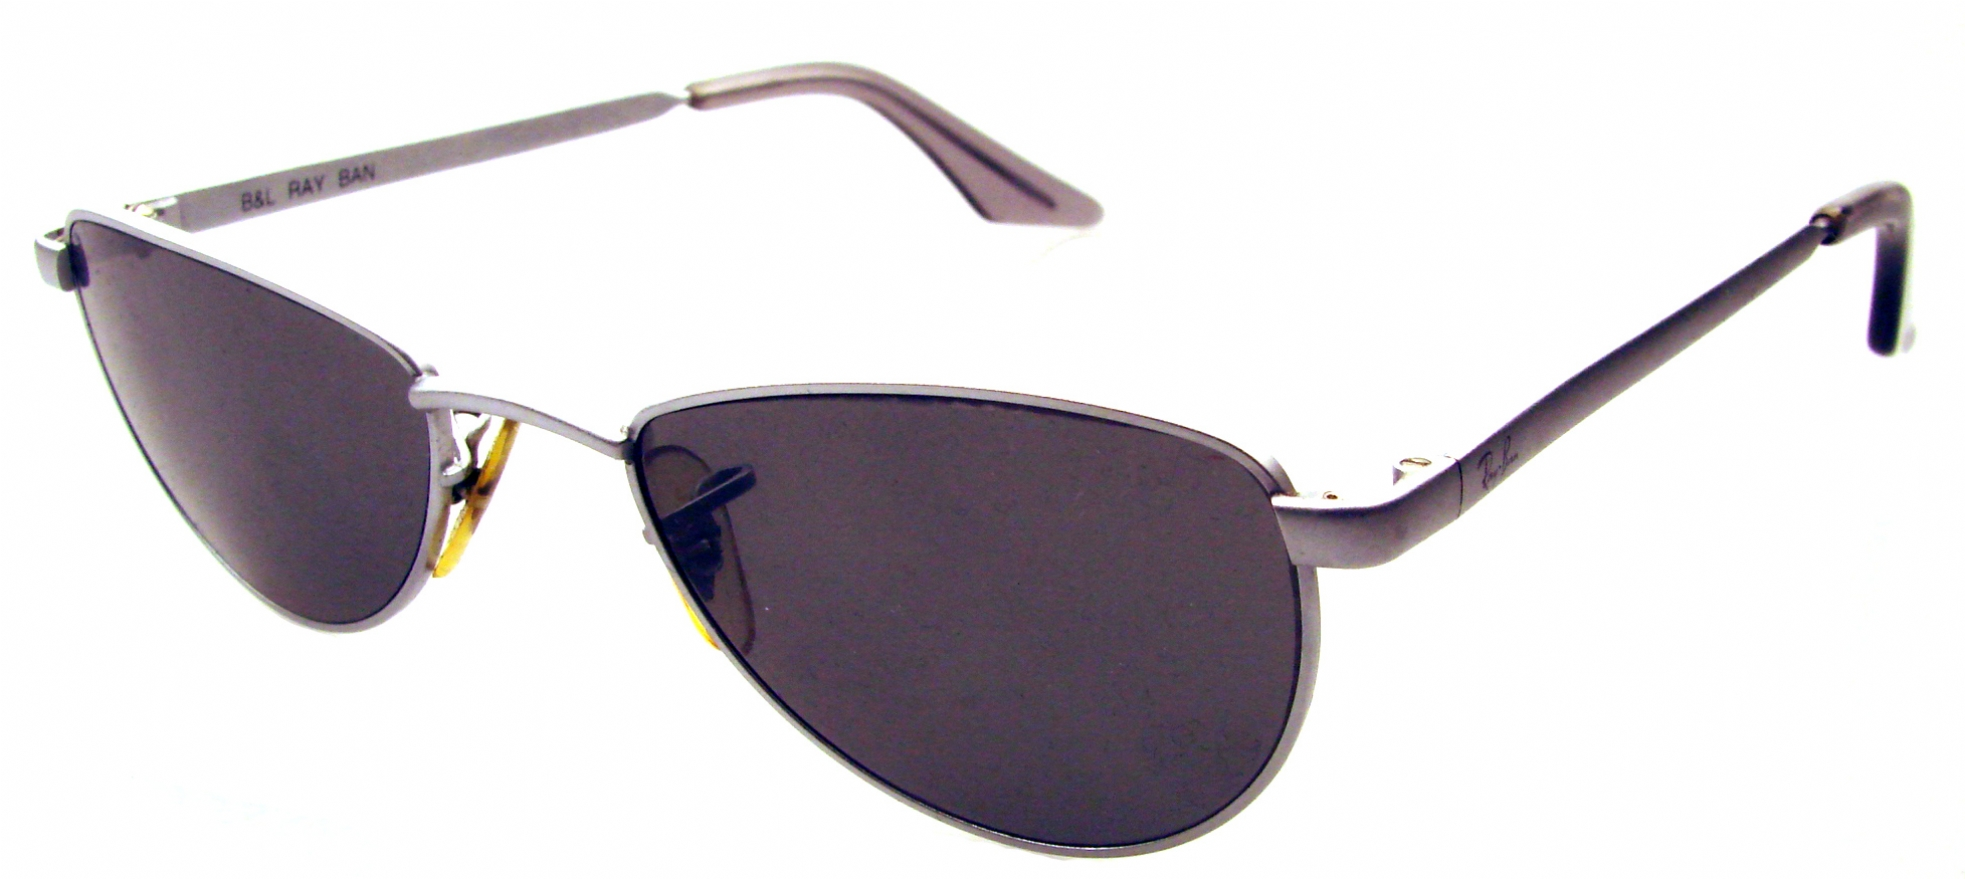 RAY BAN 2322 in color SILVER